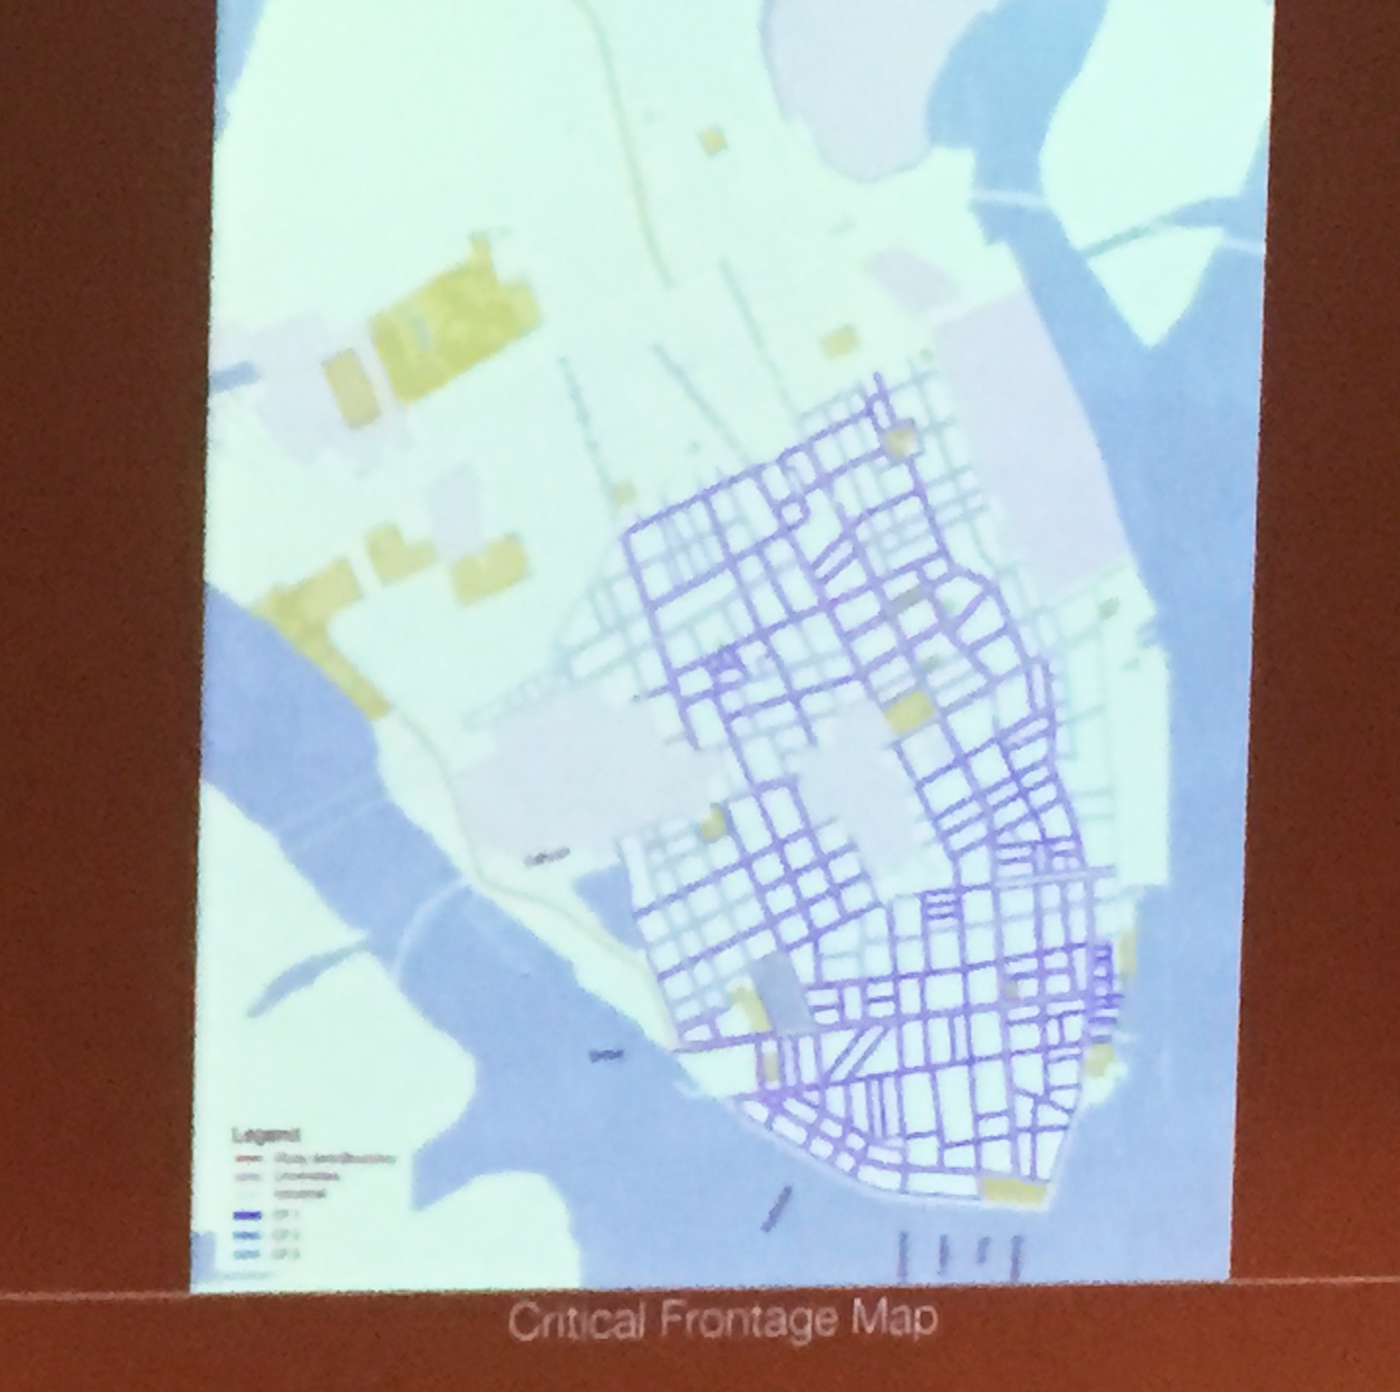 This map shows a heirarchy of streets.  The darker streets are the most important.